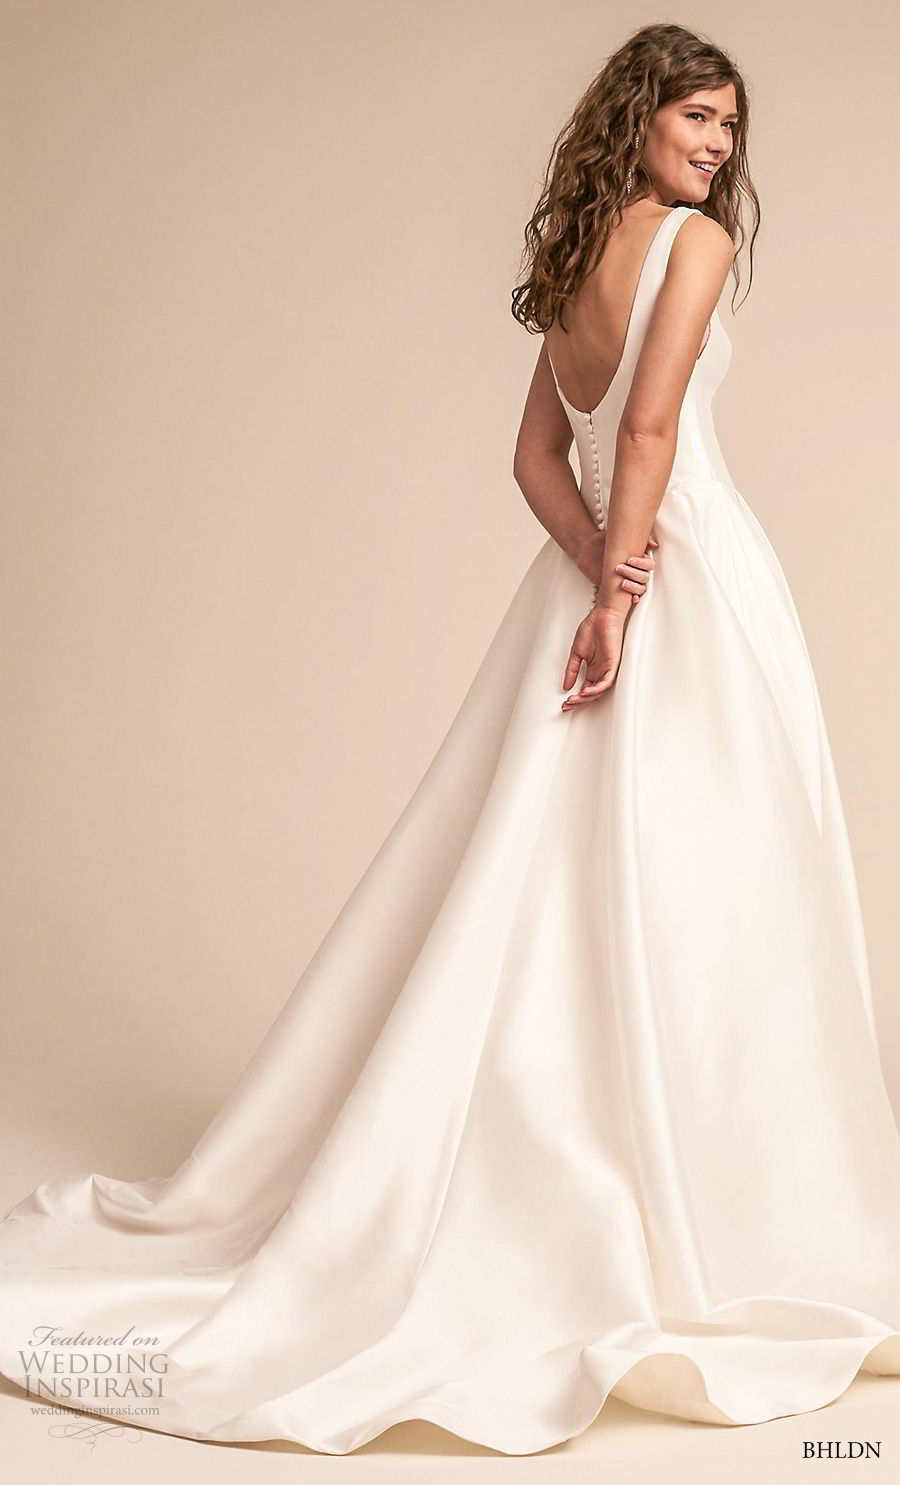 bhldn 2018 away bridal sleeveless scoop neckline simple clean bodice satin skirt classic ball gown a line wedding dress scoop back chapel train (3) bv